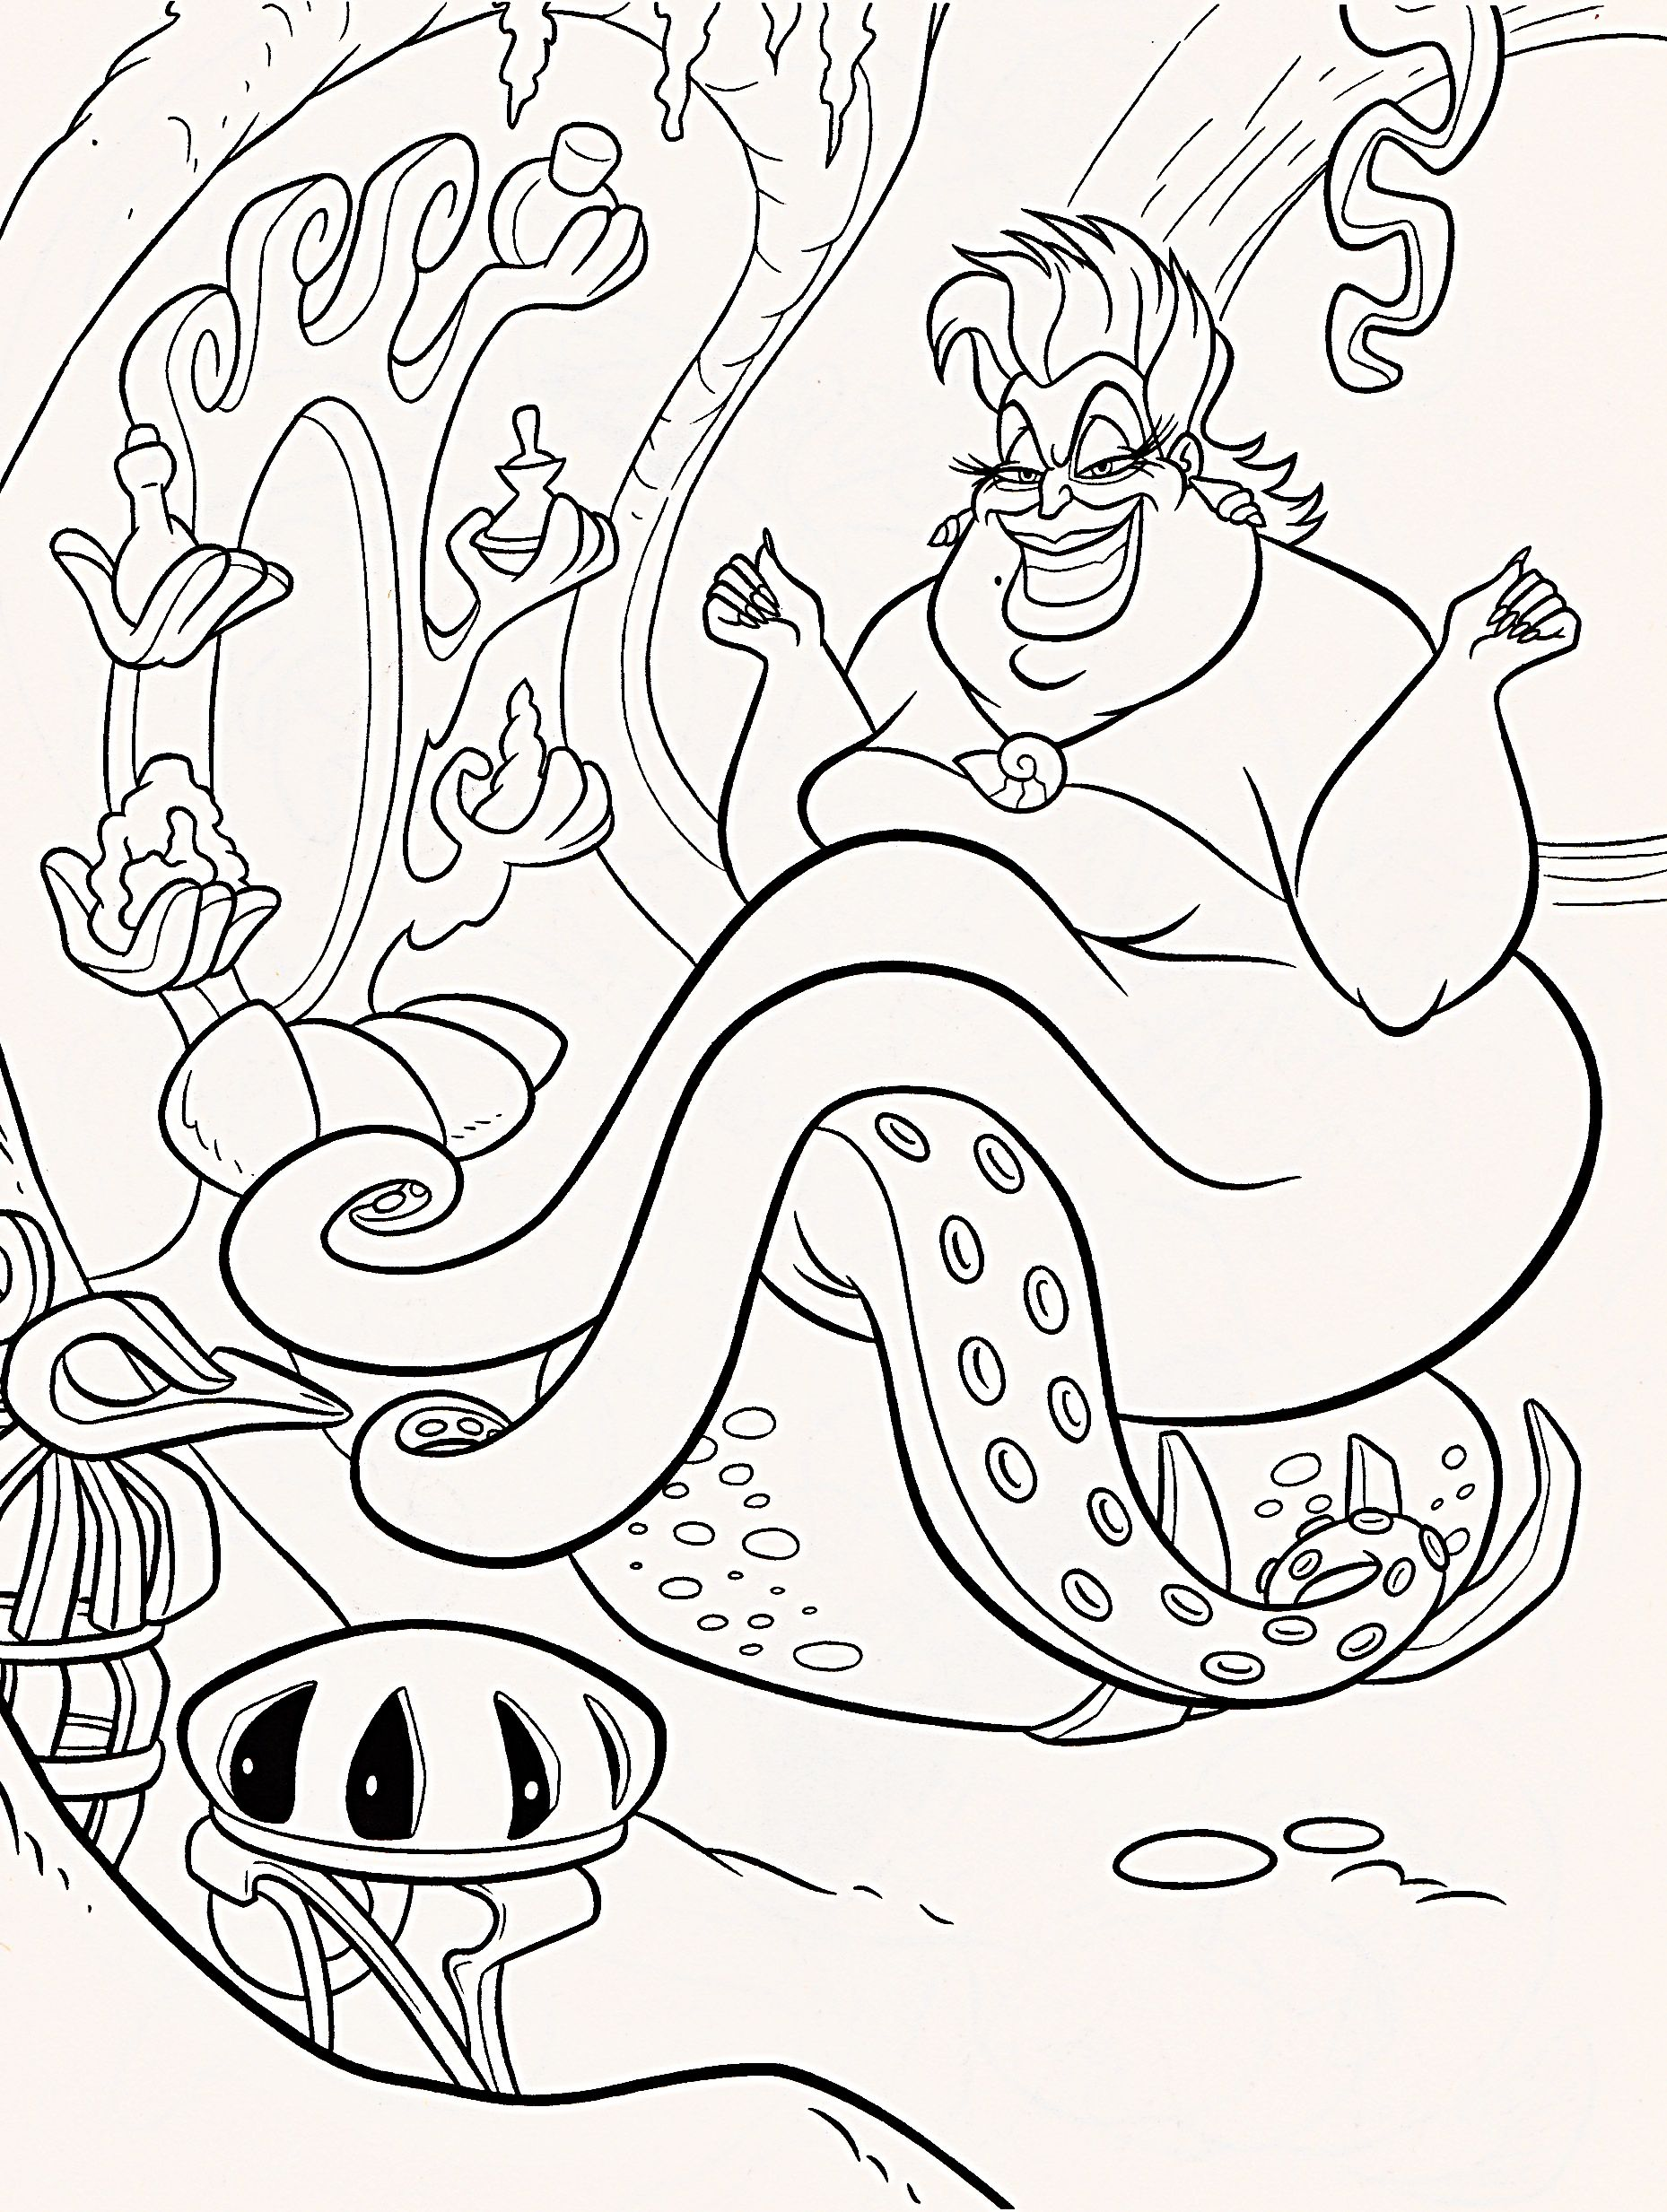 Ursula Coloring Pages Only Coloring Pages Disney Coloring Pages Mermaid Coloring Pages Princess Coloring Pages